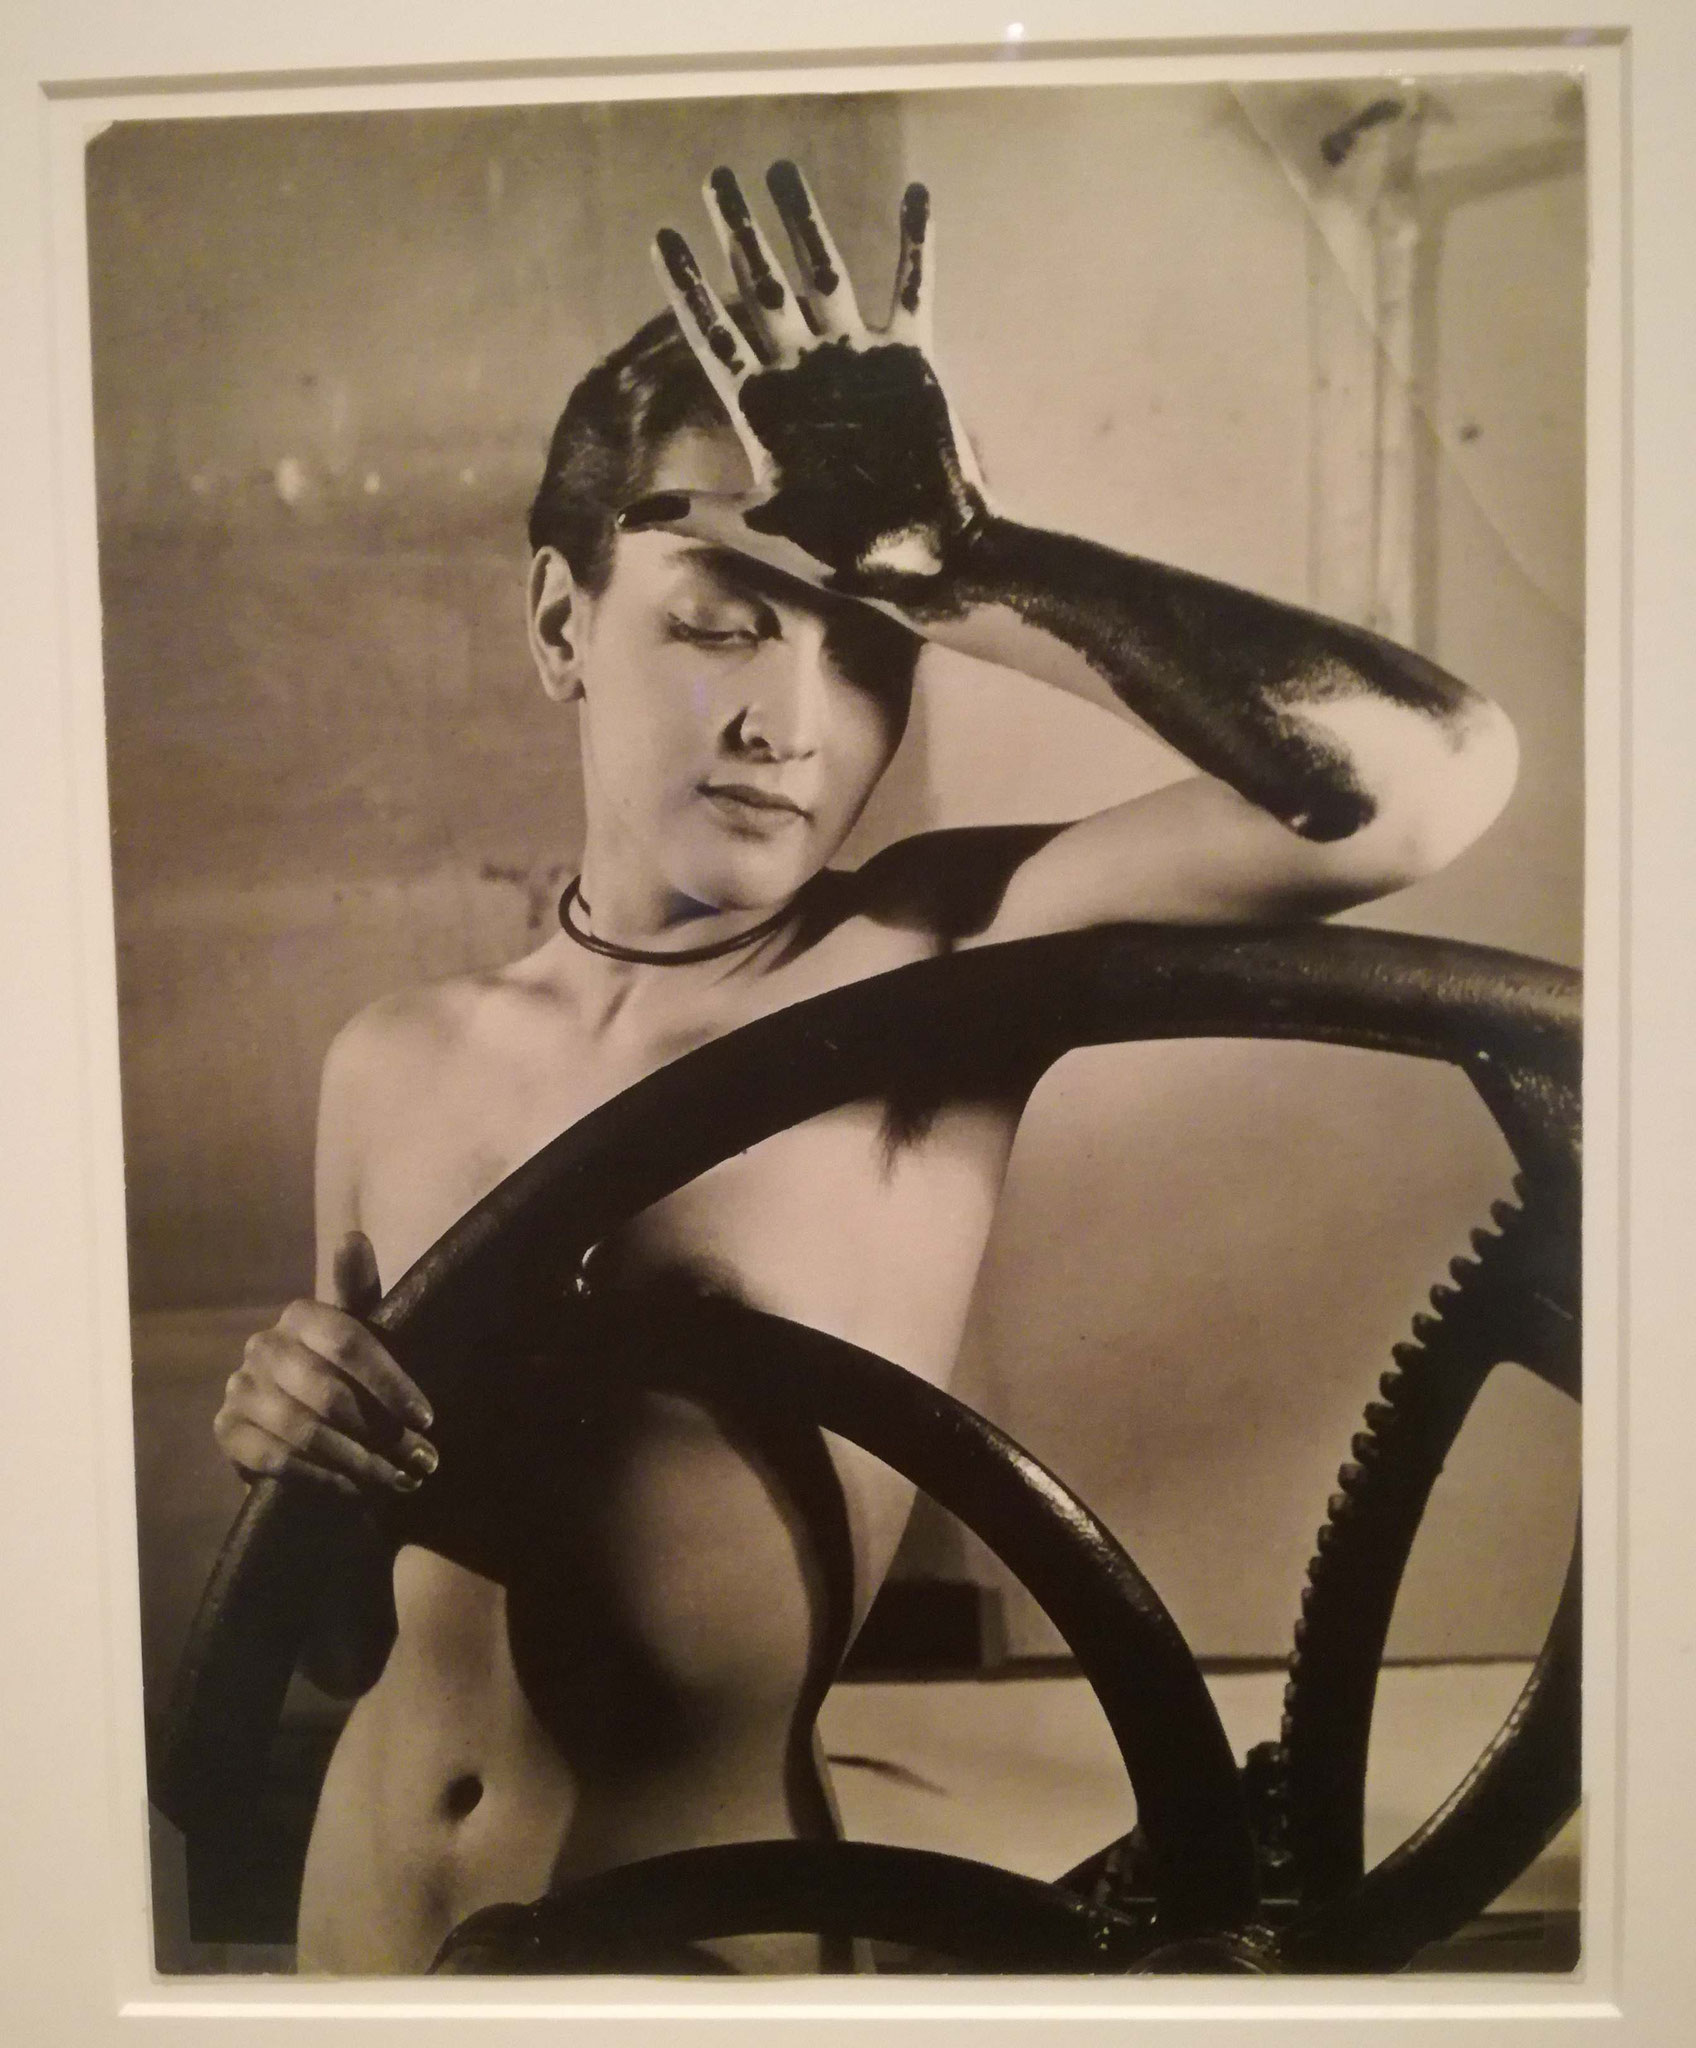 Man Ray, Erotique voilée, Sammlung Scharf-Gerstenberg, Nationalgalerie Berlin